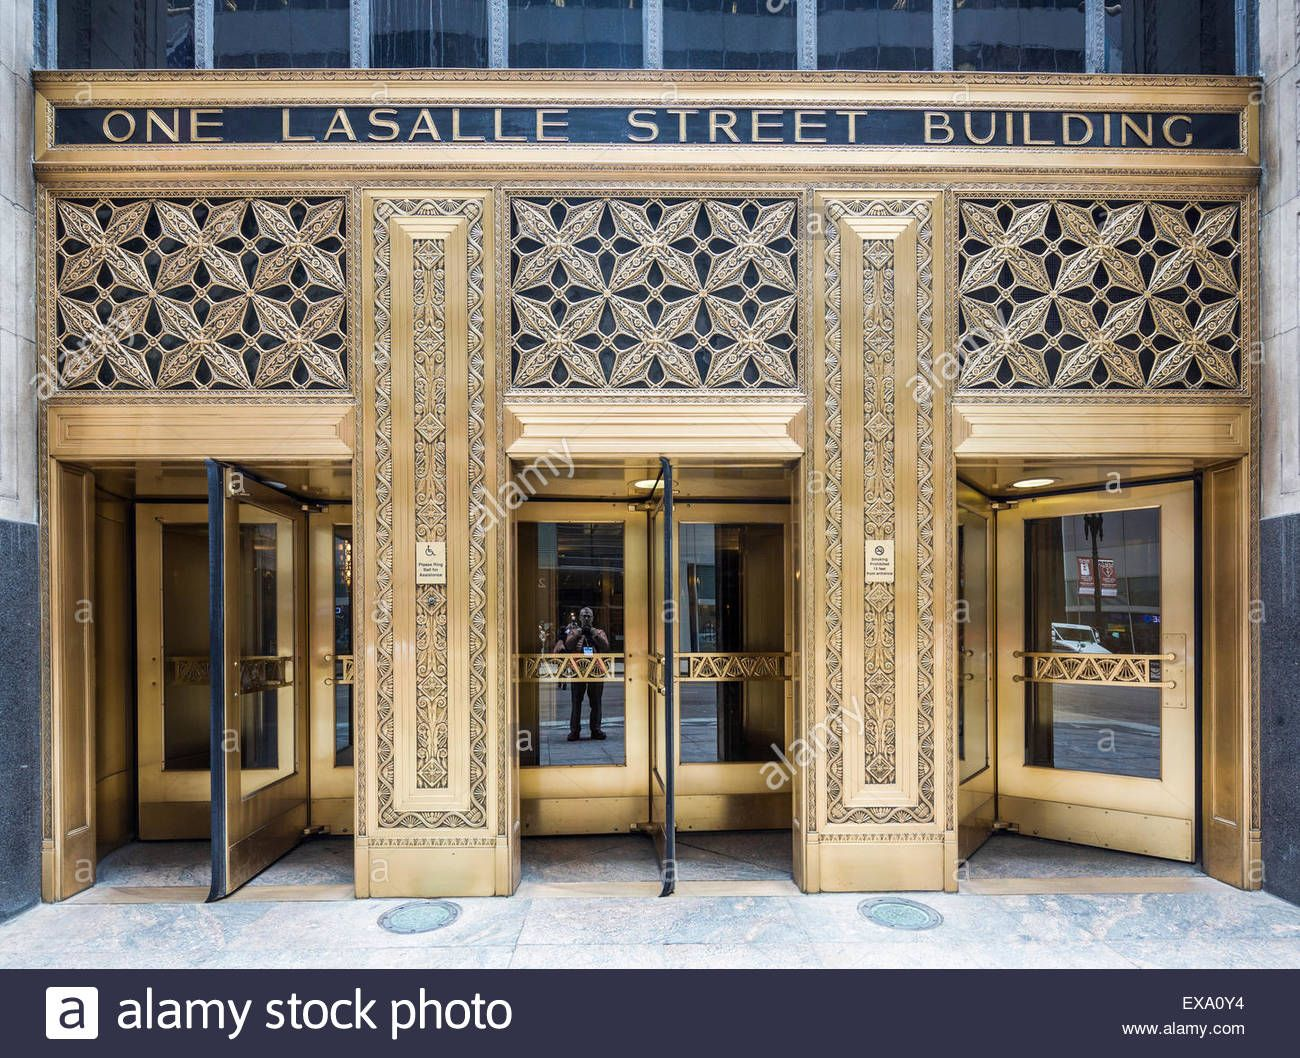 Download This Stock Image Entrance Doors The One North Lasalle Building Or One Lasalle Street Building Chicago Illinois Us Entrance Doors Lasalle Entrance